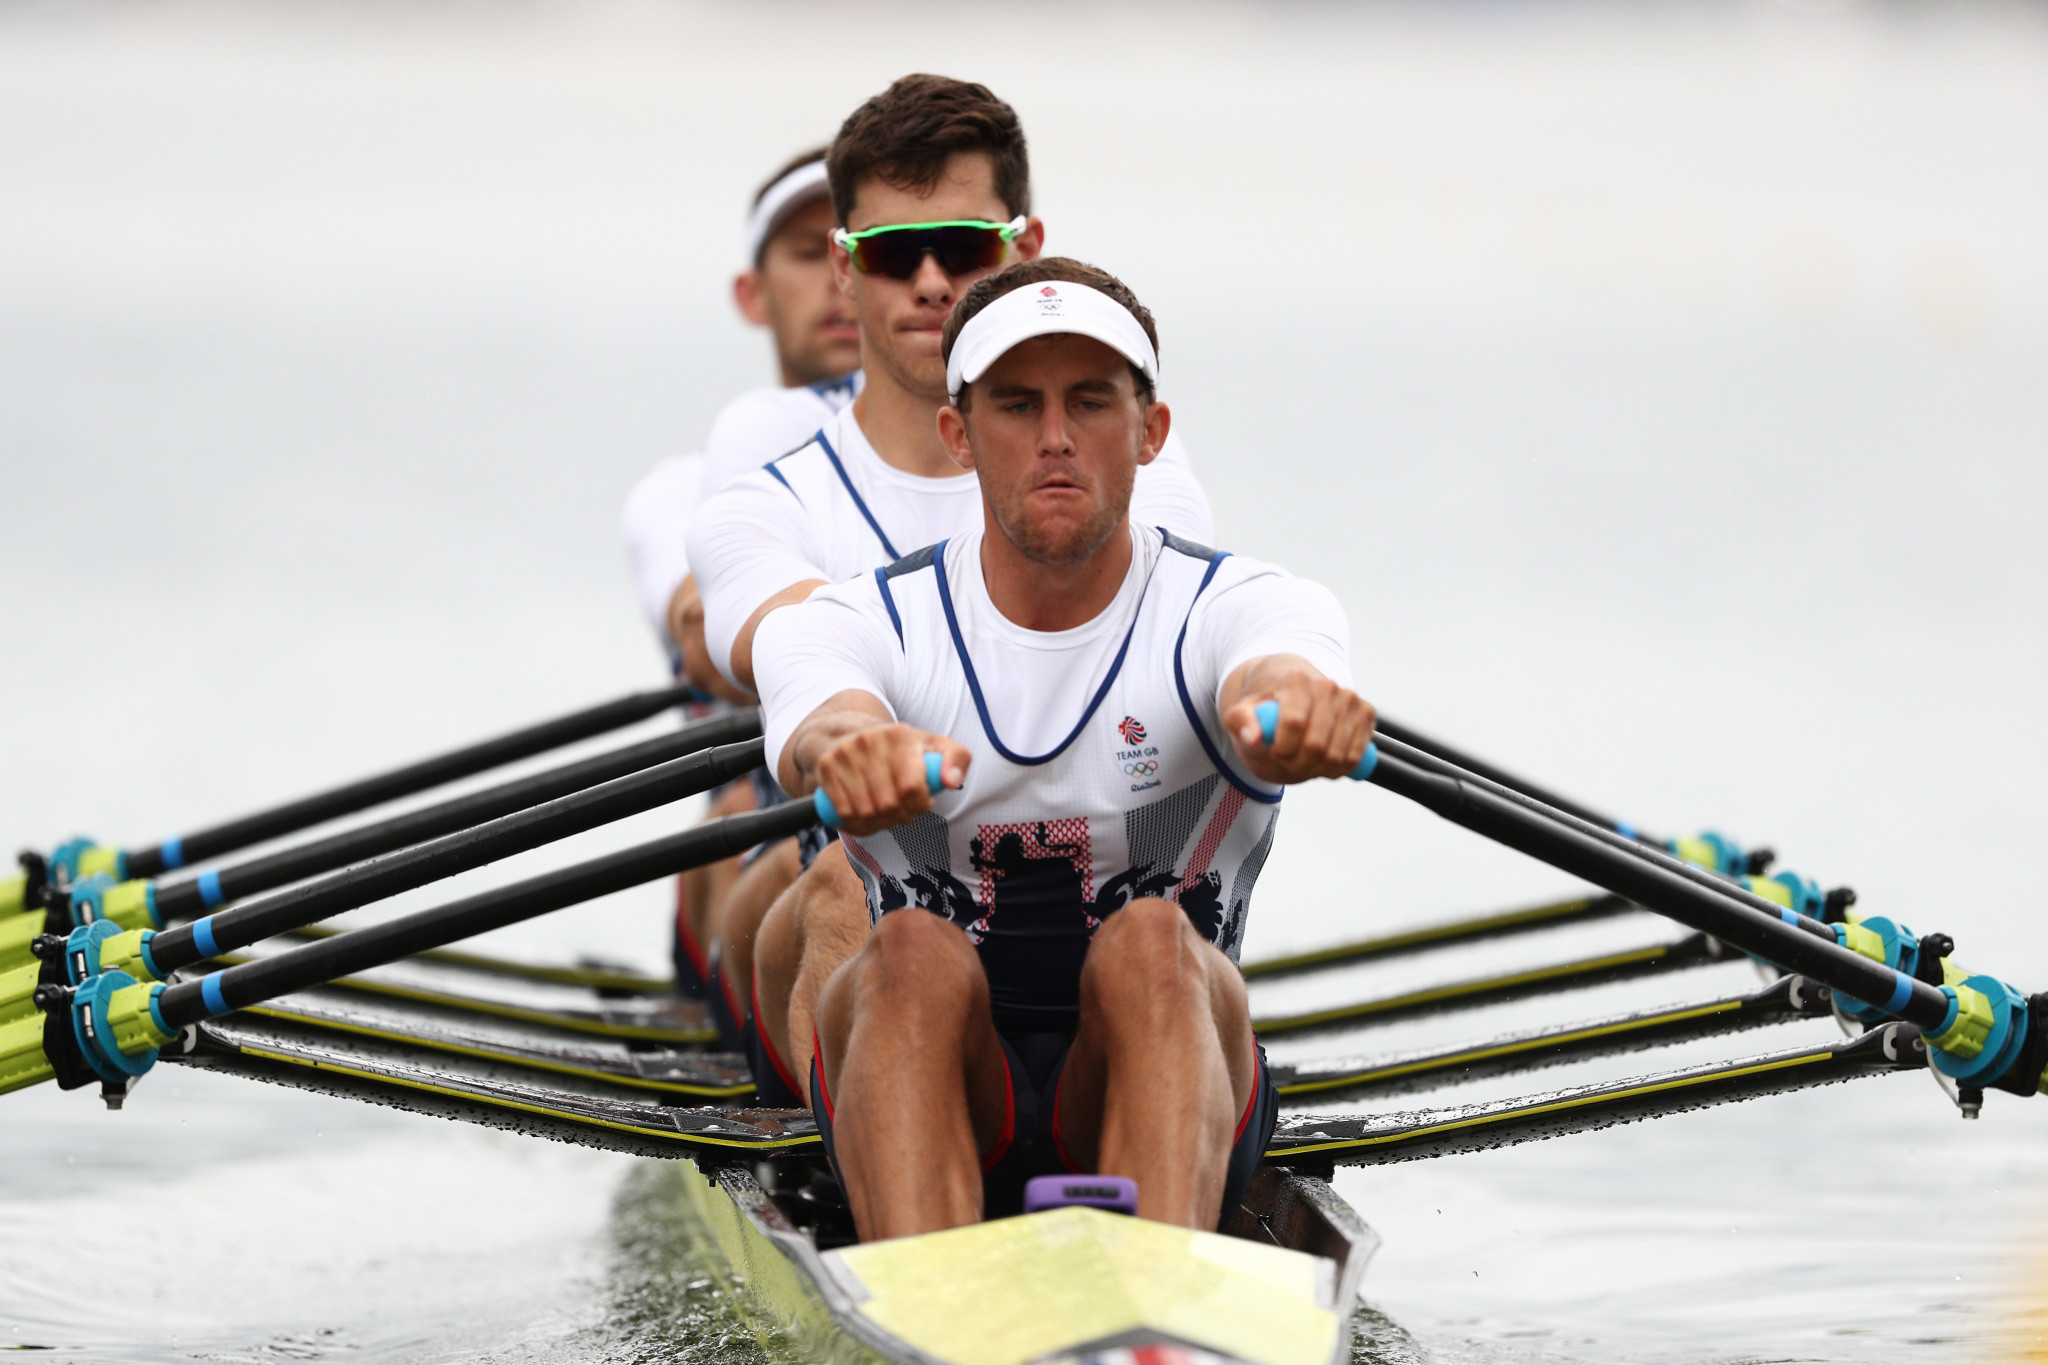 Pete Lambert competed at the Rio 2016 Olympic Games in the quadruple sculls event ©Getty Images